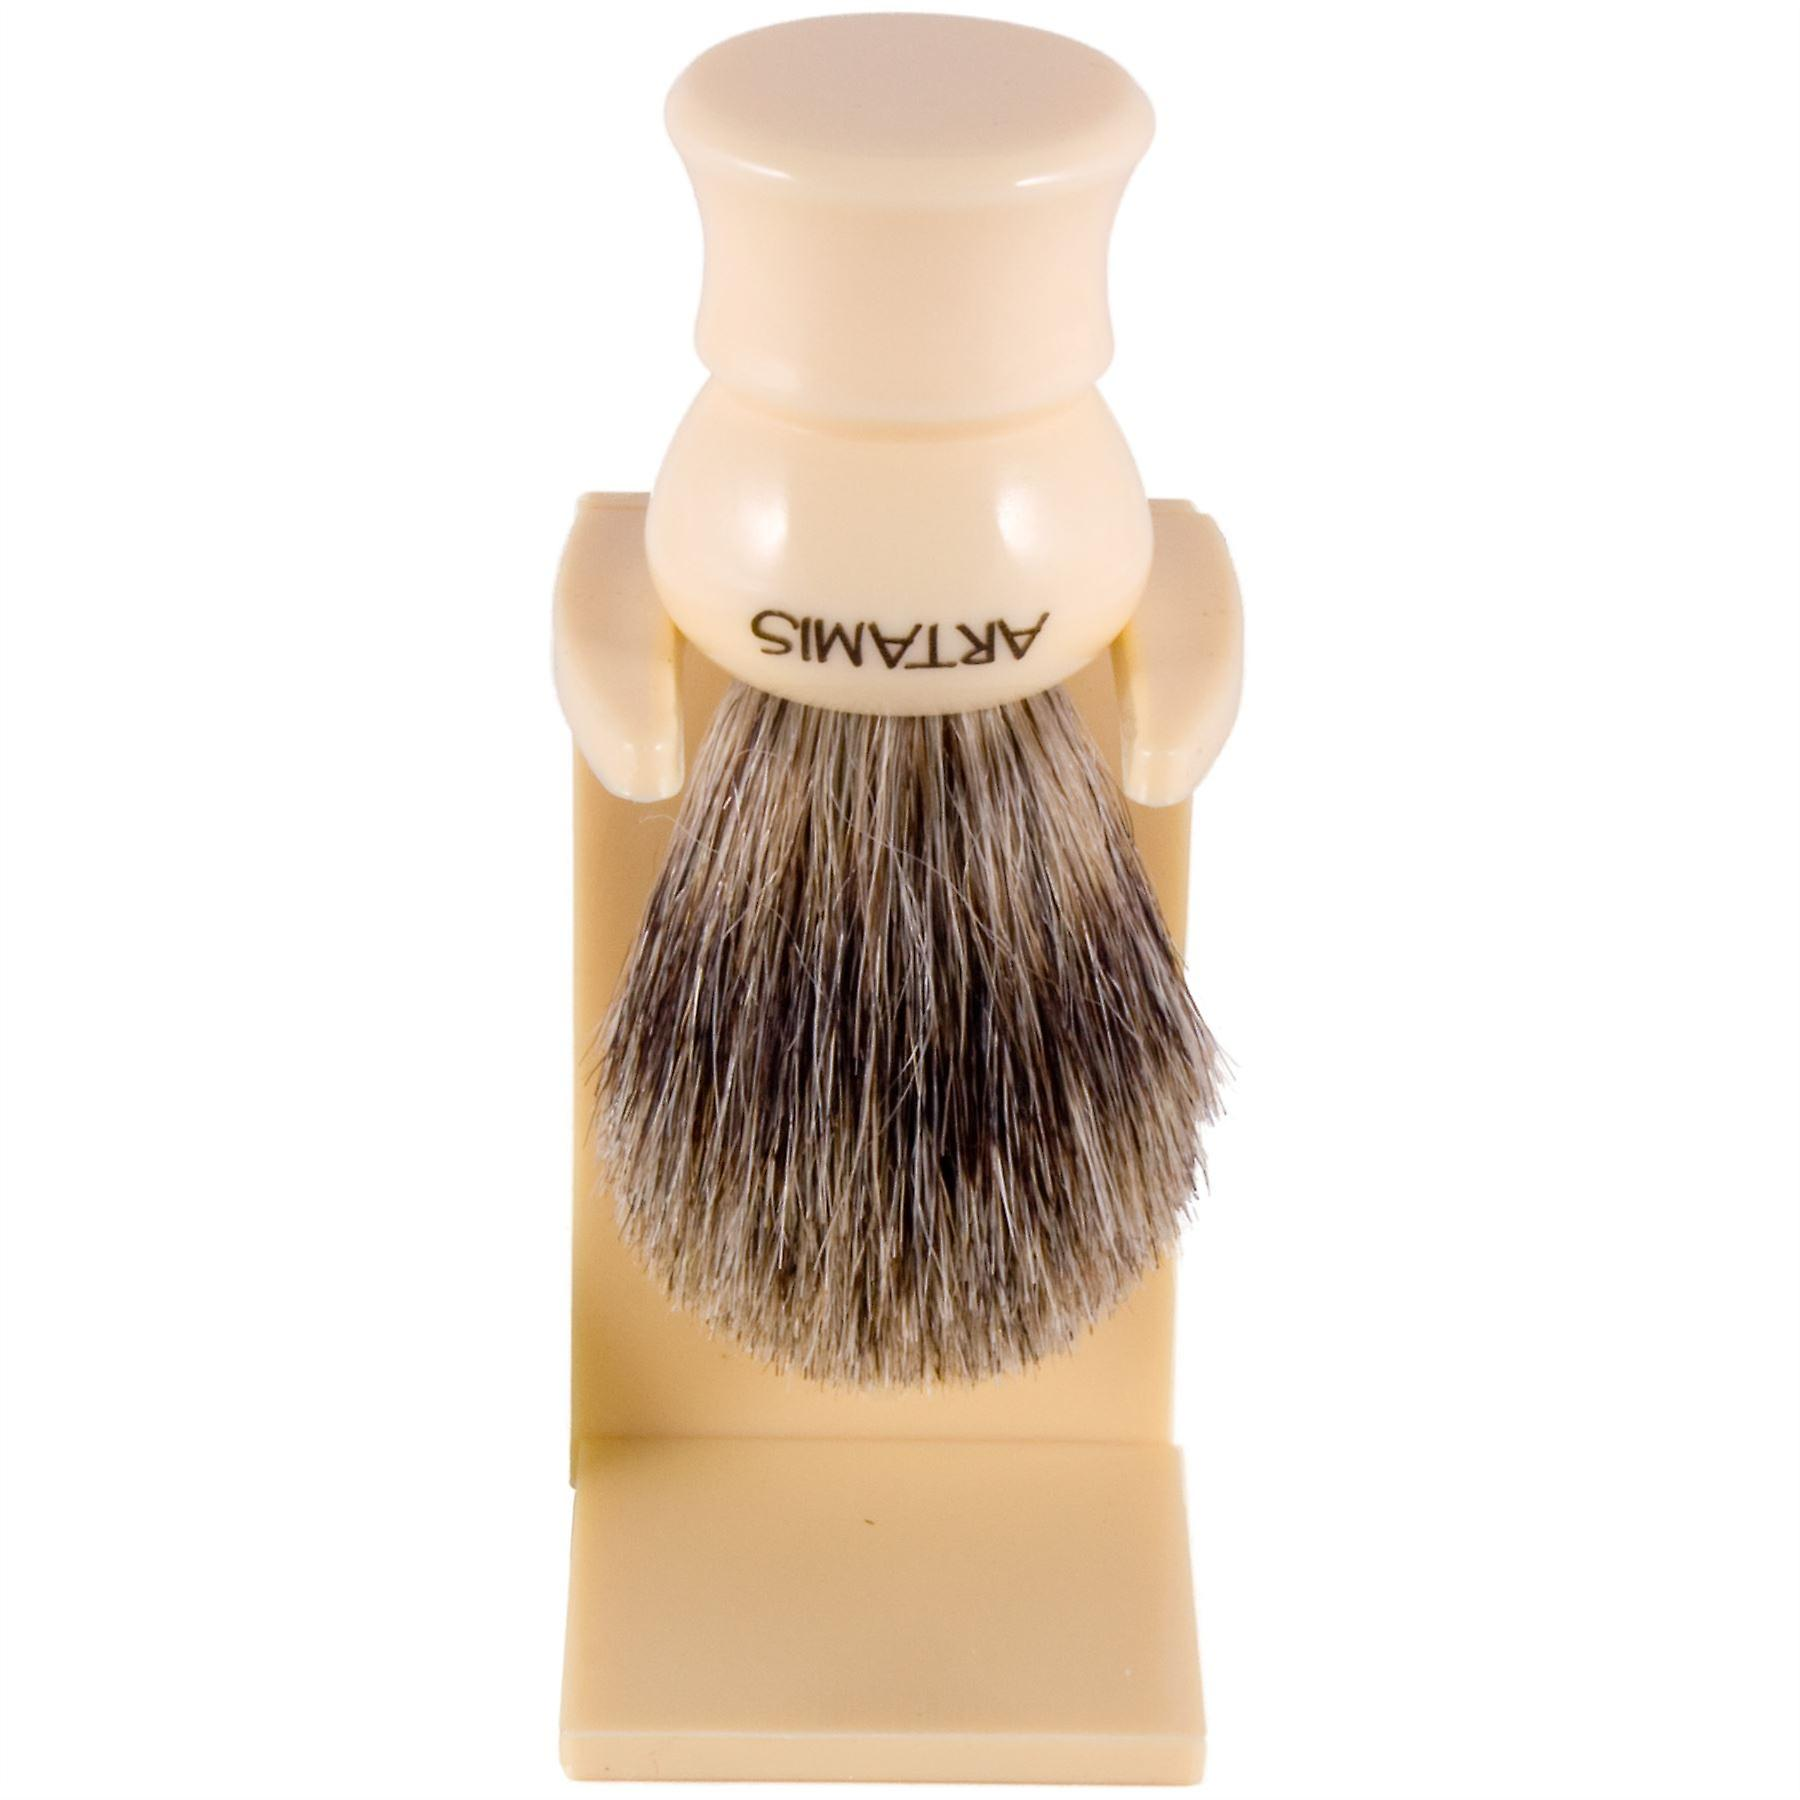 Artamis Pure Badger Hair Small Shaving Brush with Drip Stand - Ivory Colour